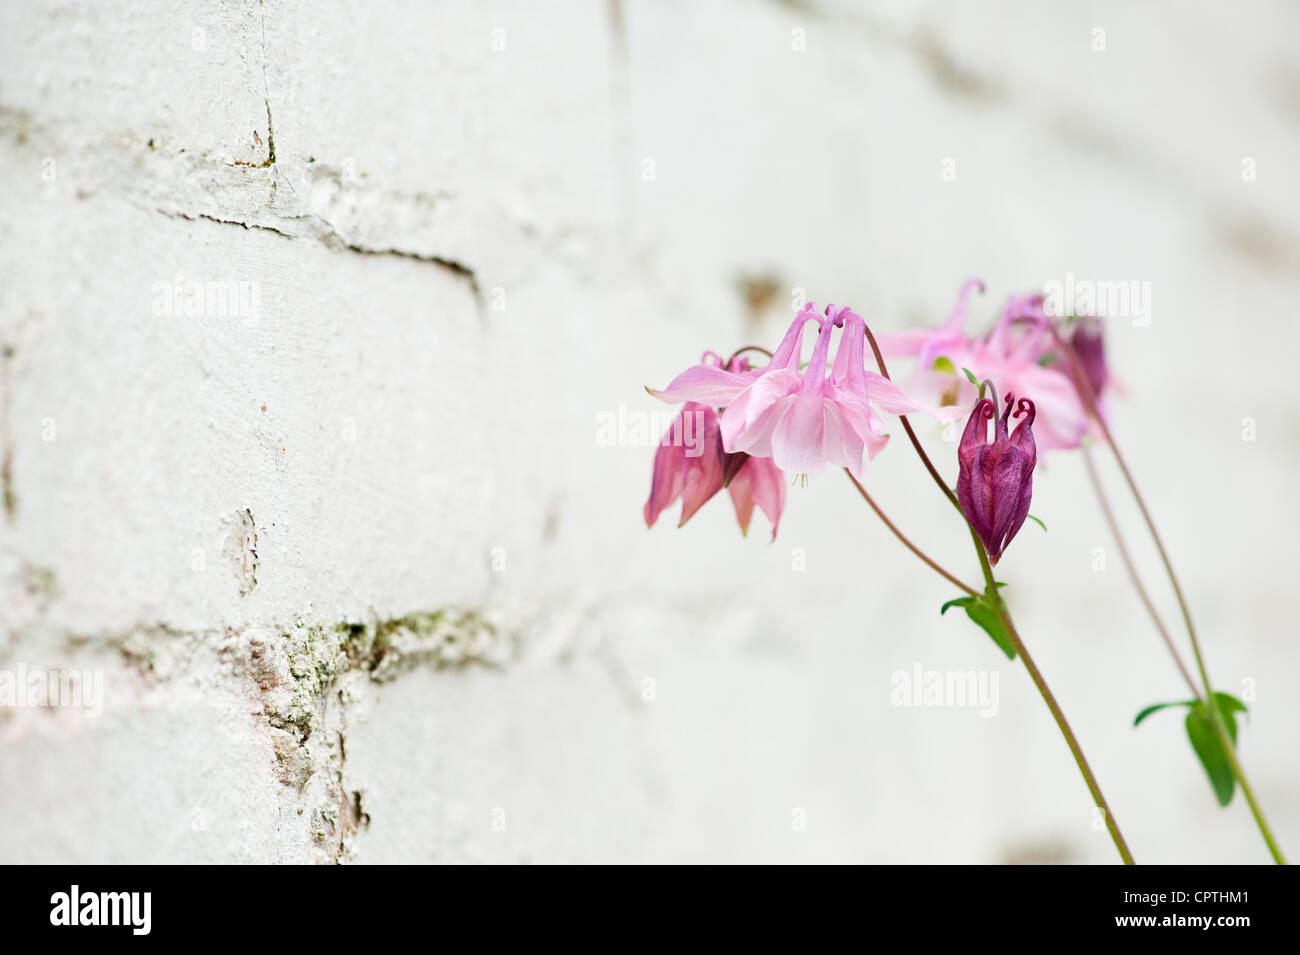 Pink Aquilegia vulgaris flower against a white painted garden wall - Stock Image